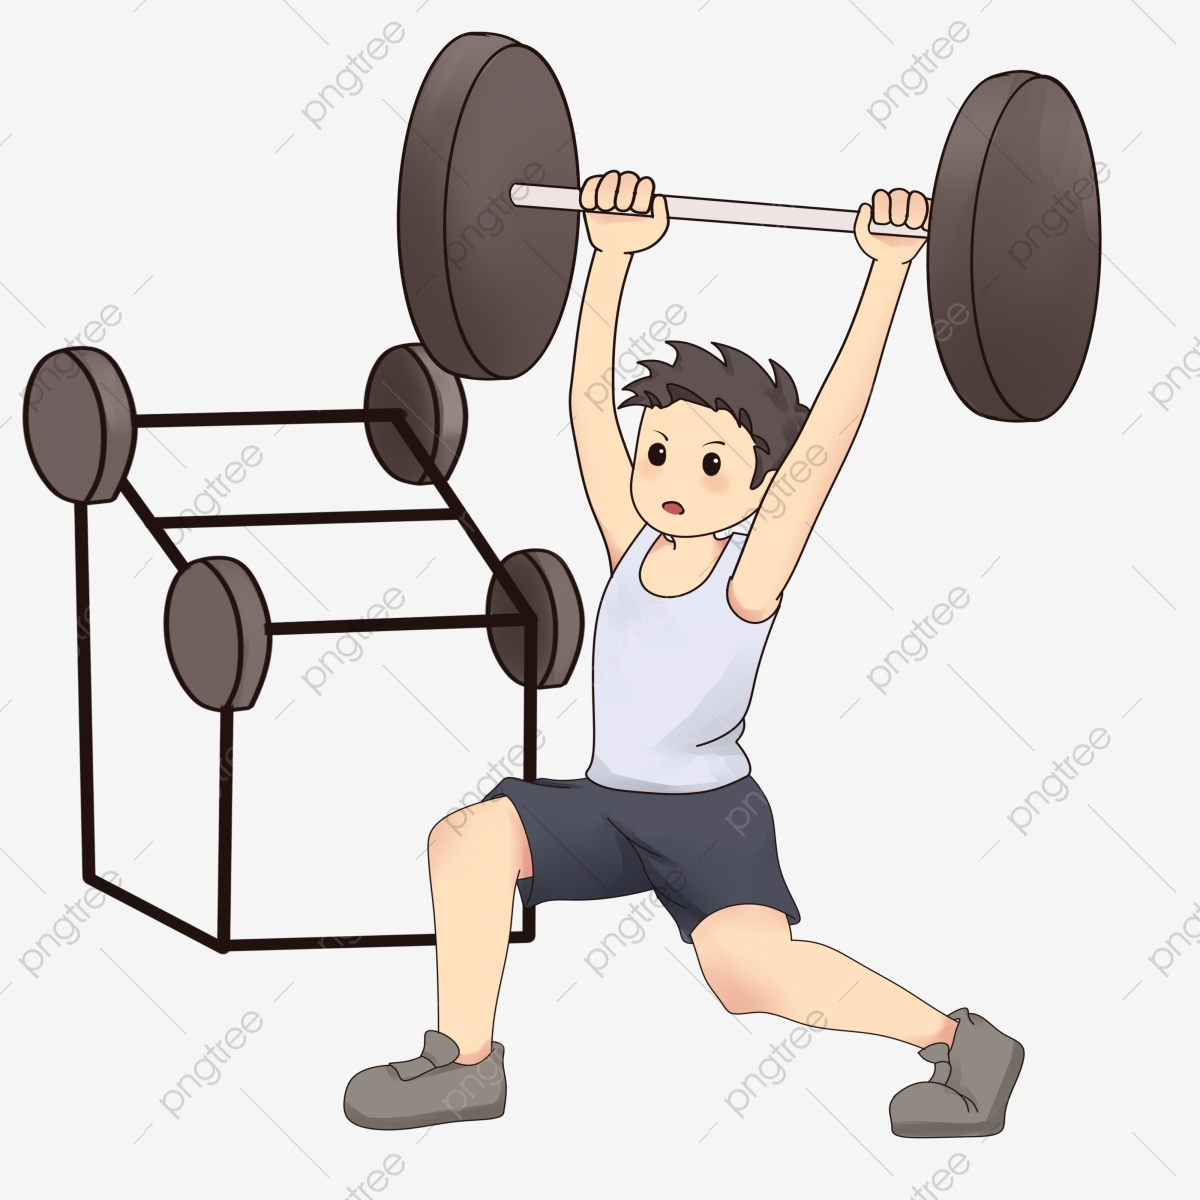 hight resolution of commercial use resource upgrade to premium plan and get license authorization upgradenow gym gym clipart